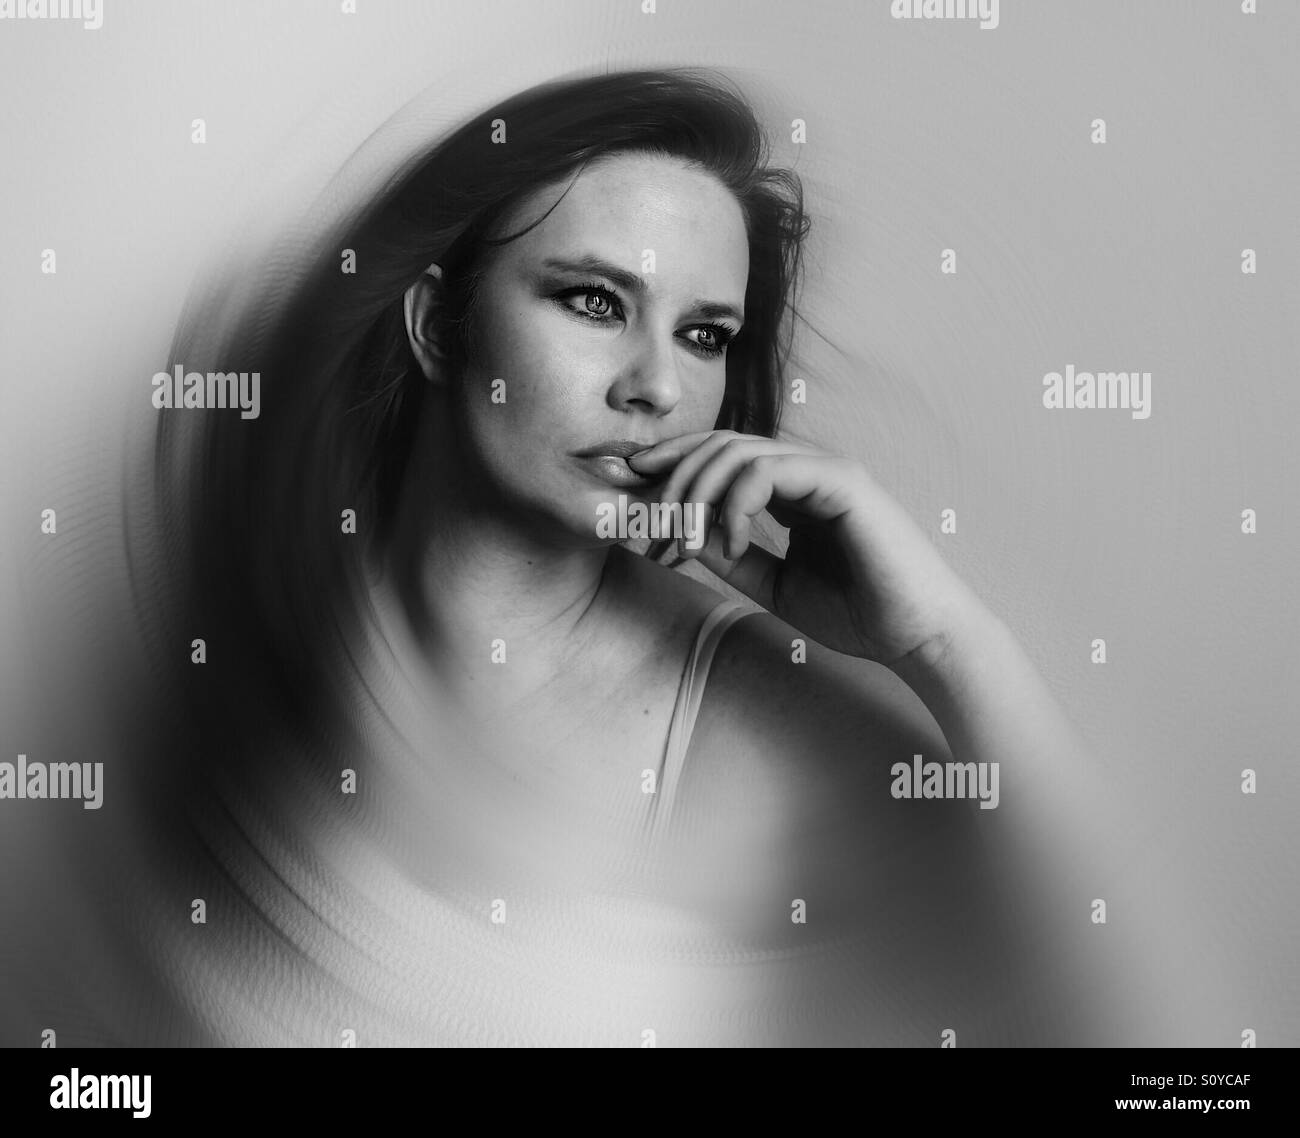 Creative blurred black and white portrait of woman in deep thought against wall - Stock Image